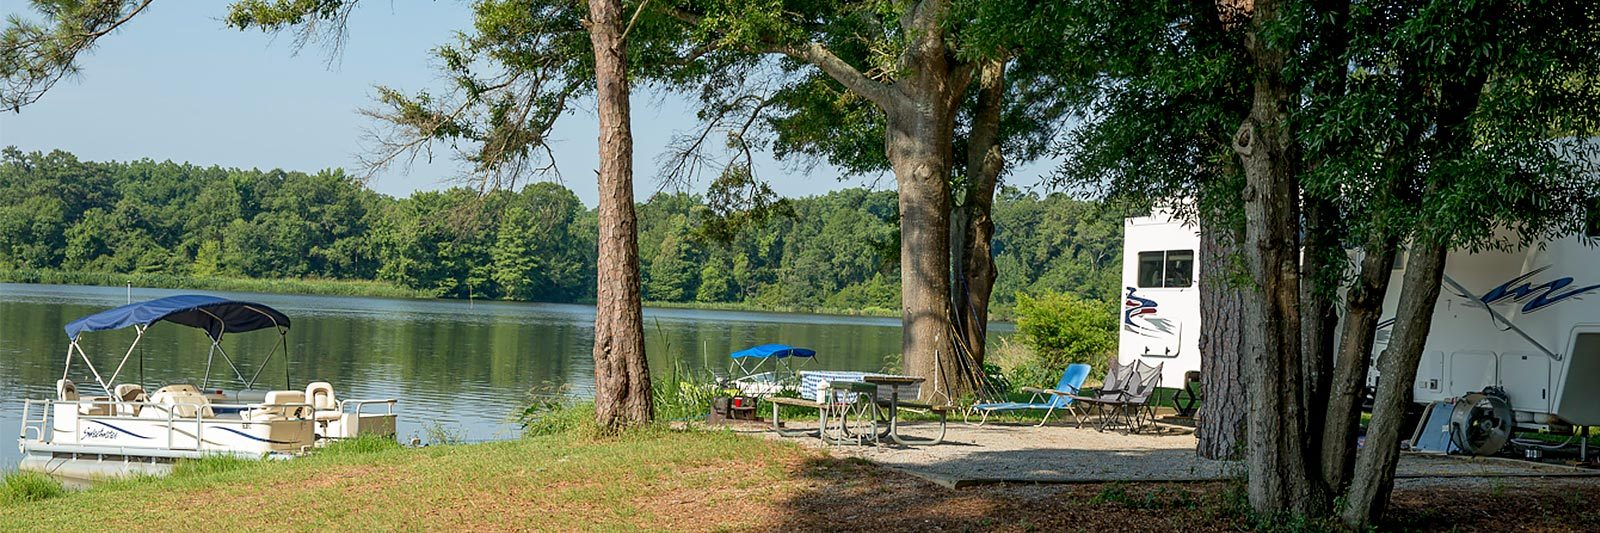 Lake Blackshear GA Veterans Camping